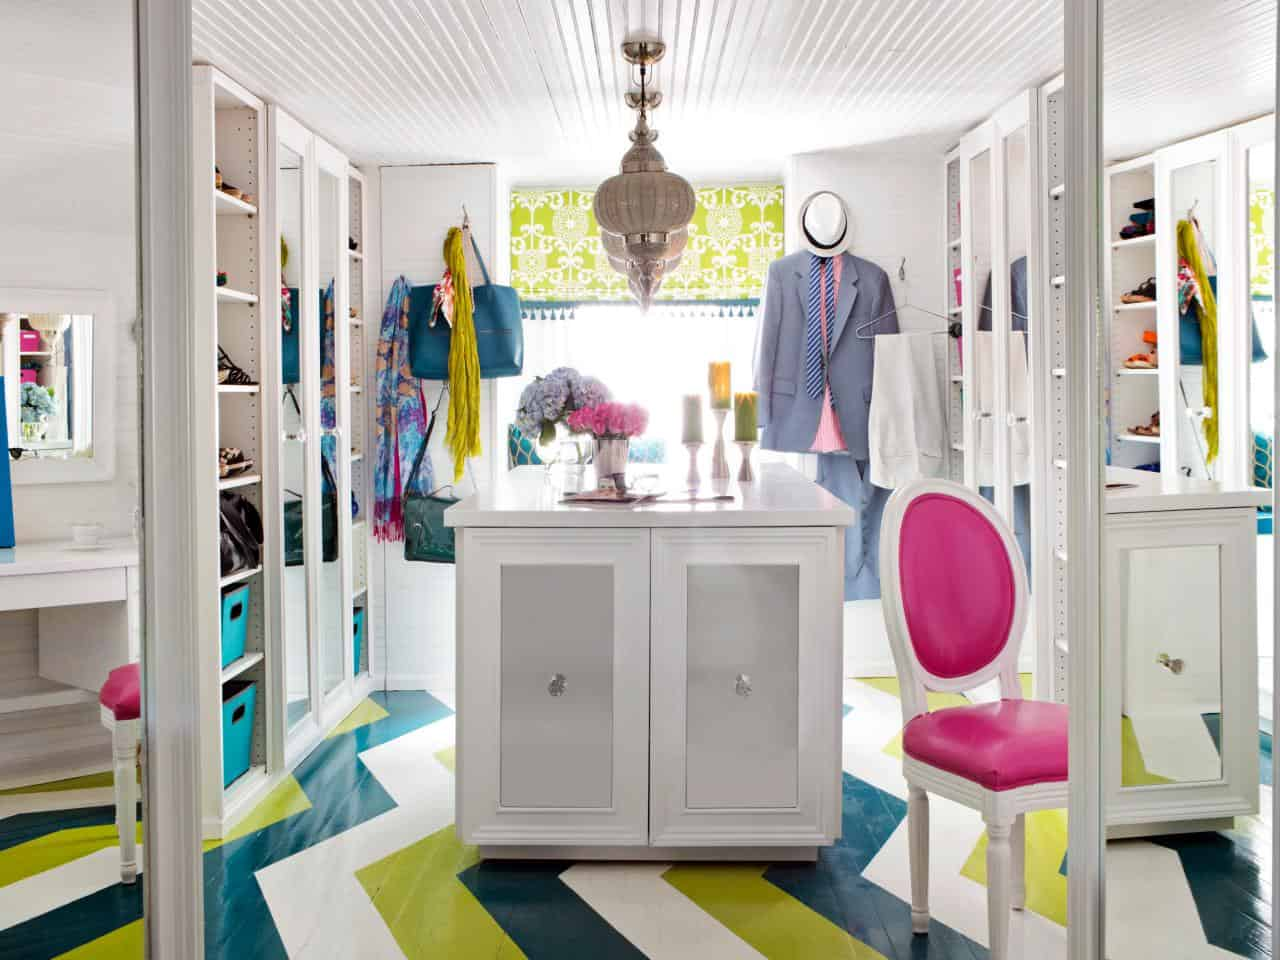 Adding color to your walk-in closet does not need to be difficult.